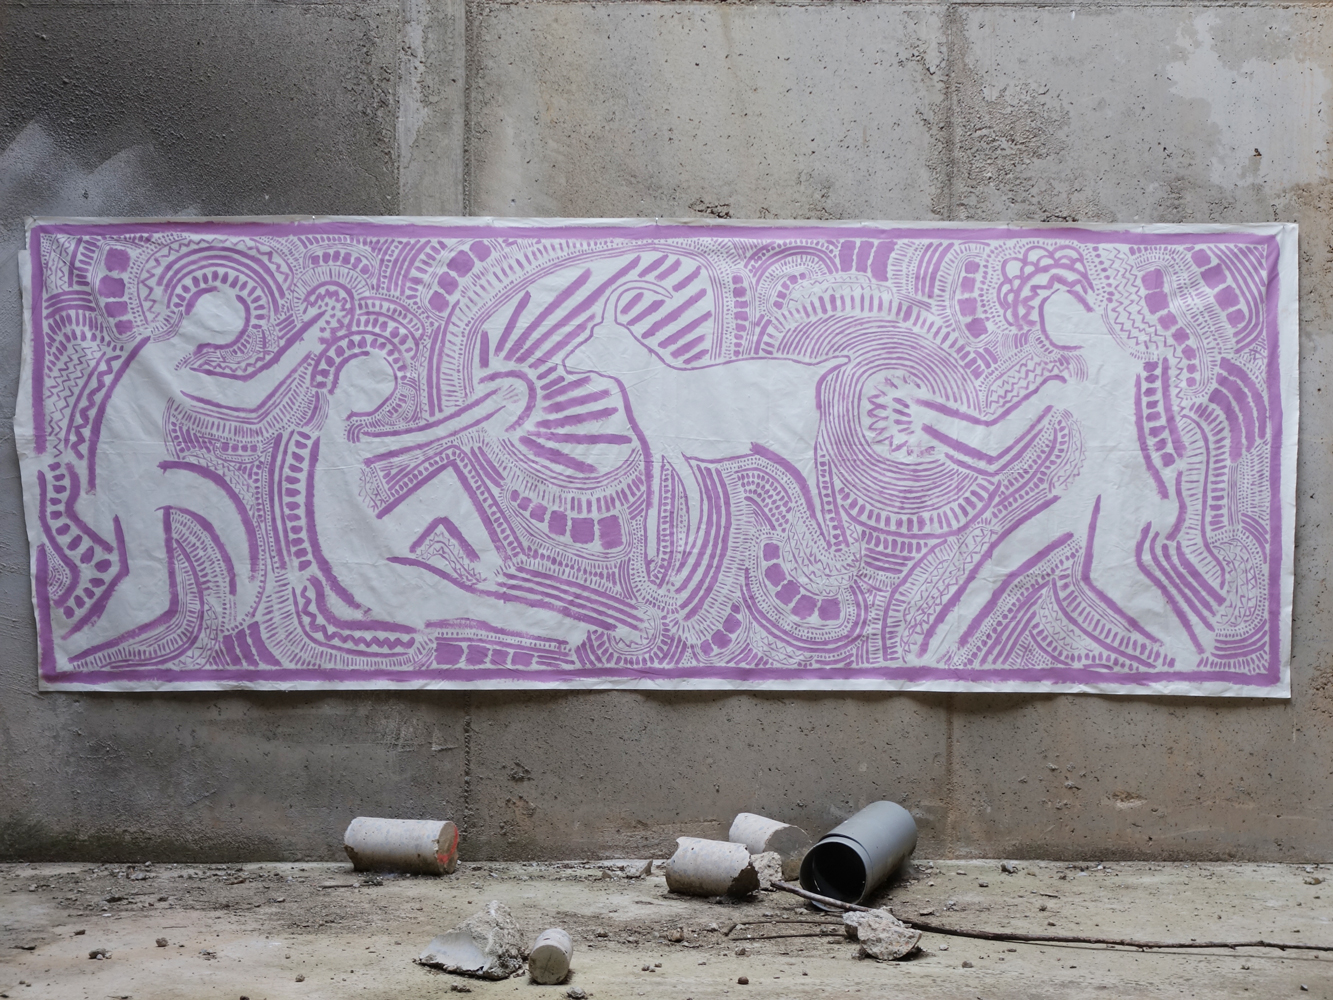 purple_pink_goat_abandoned_building_spain_2016_christopher_jewitt.jpg